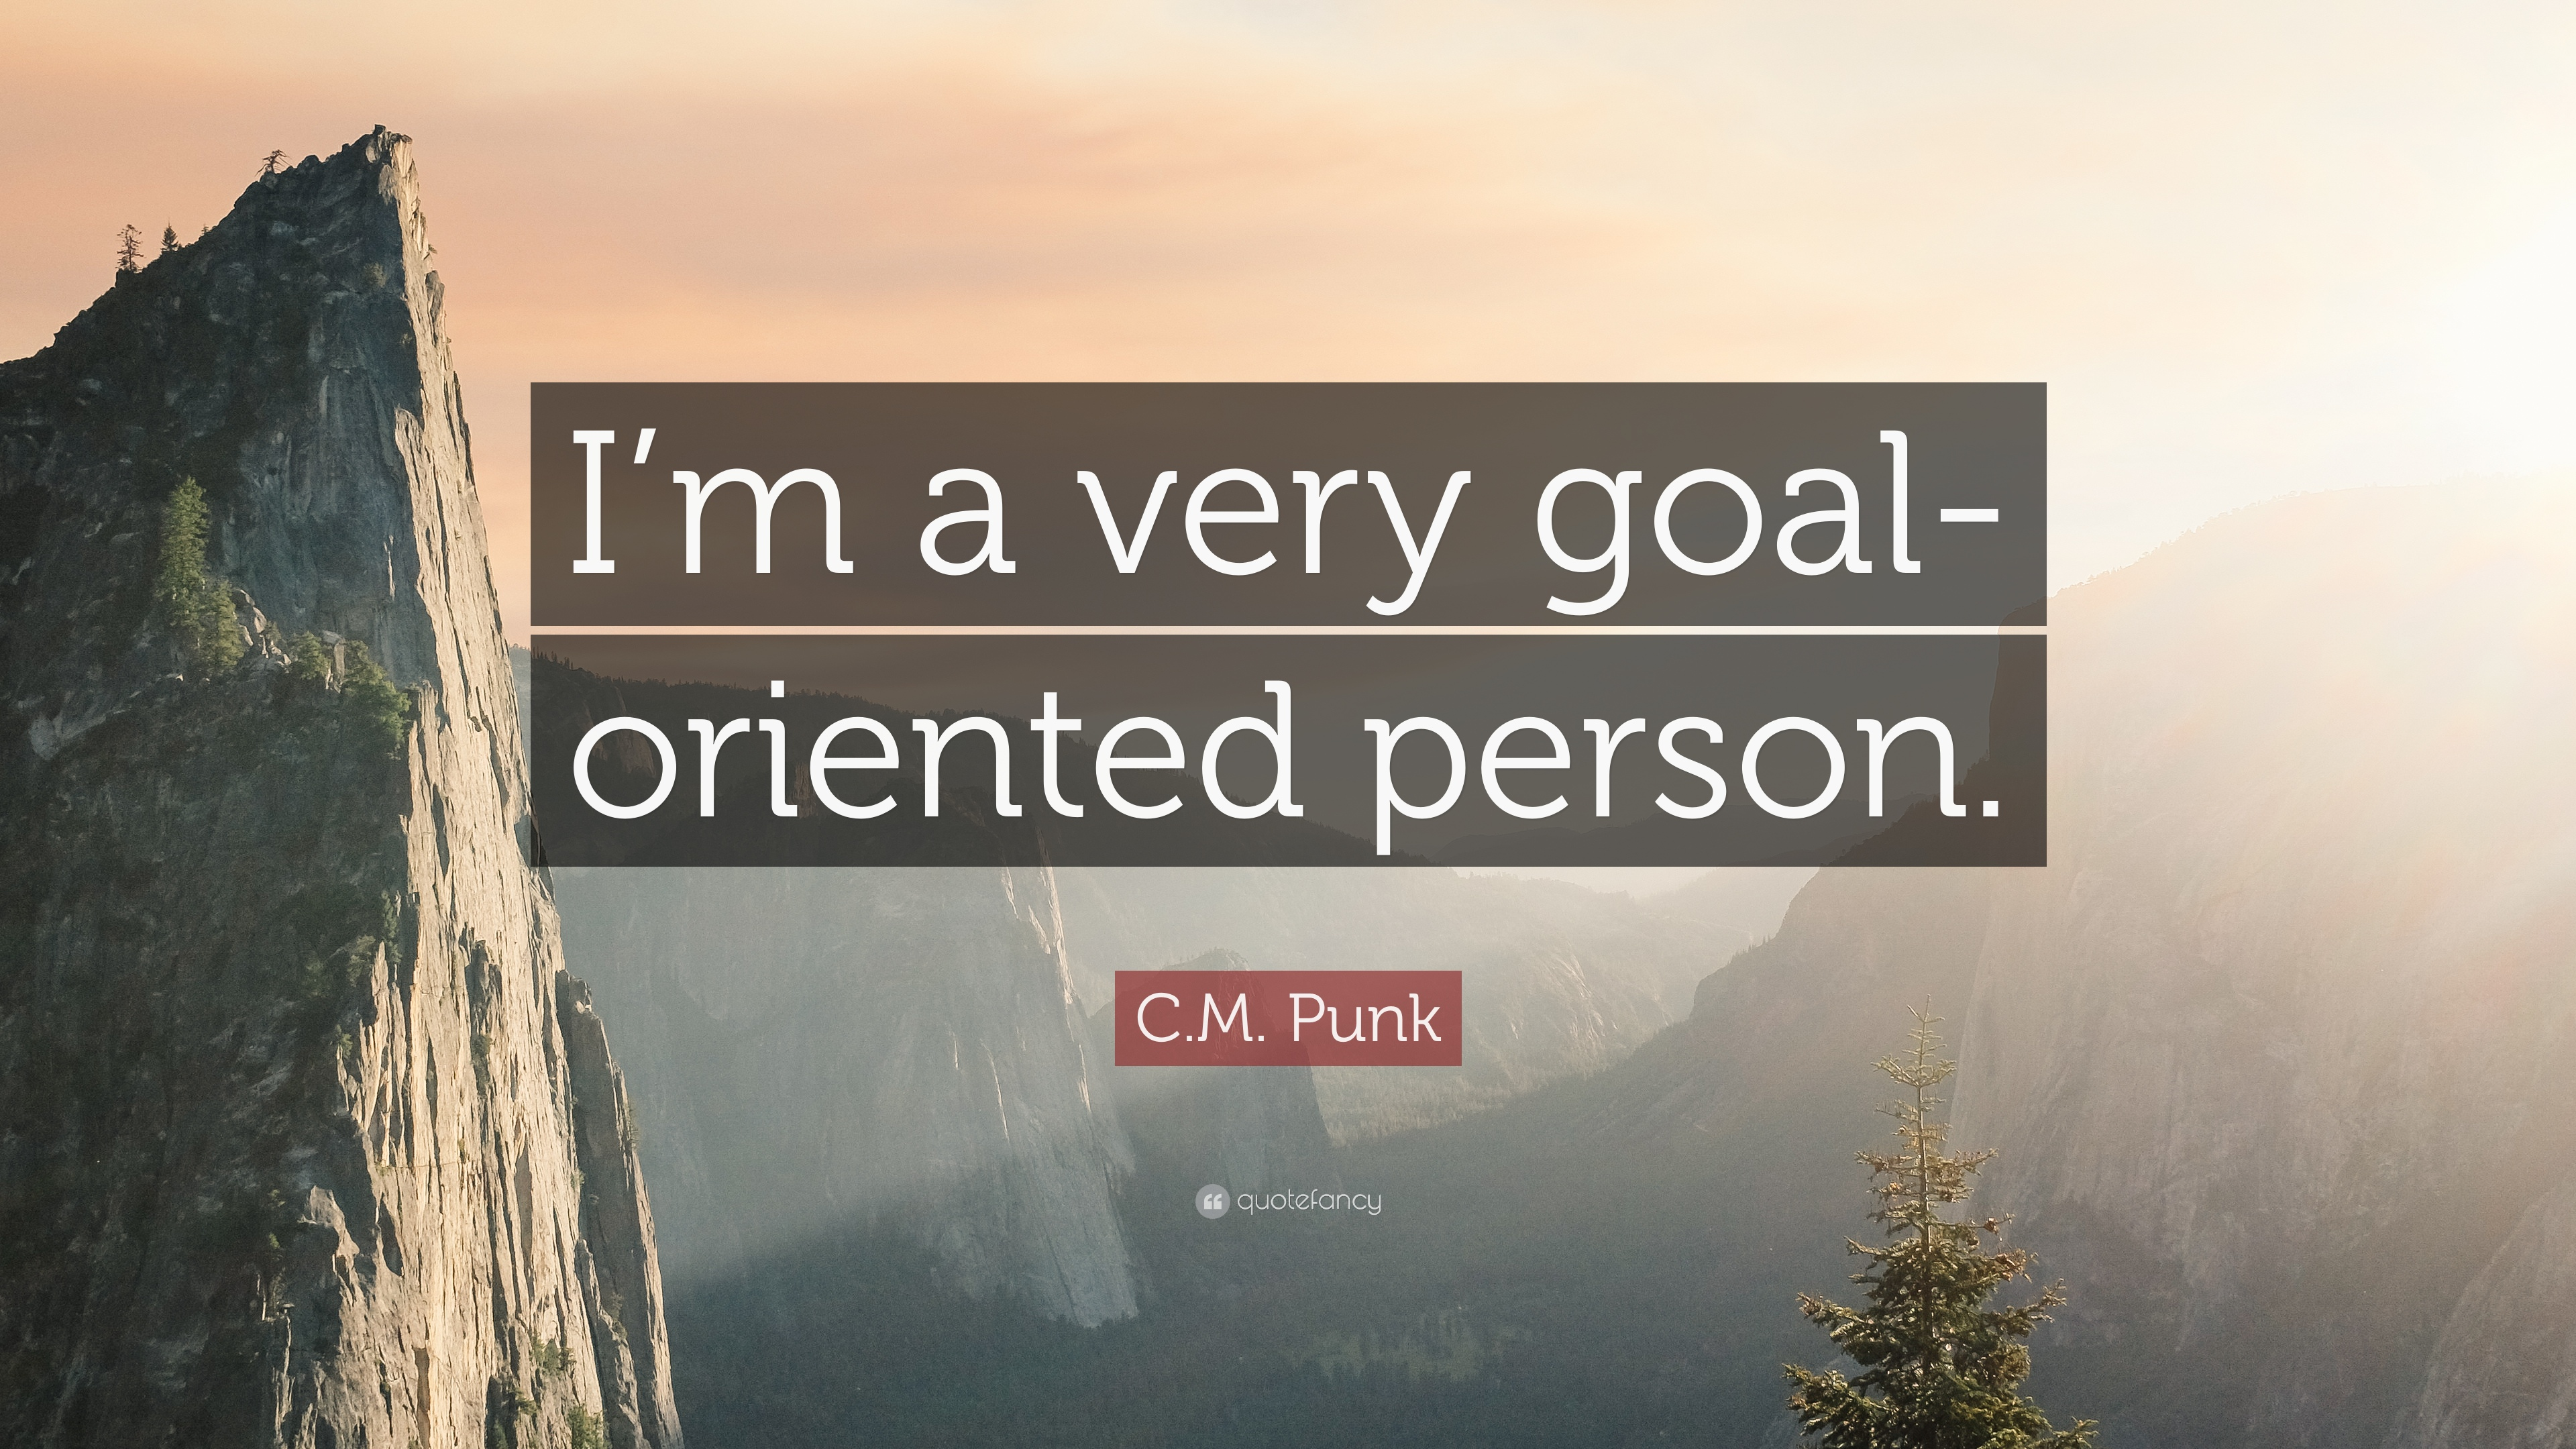 c m punk quote i m a very goal oriented person  c m punk quote i m a very goal oriented person